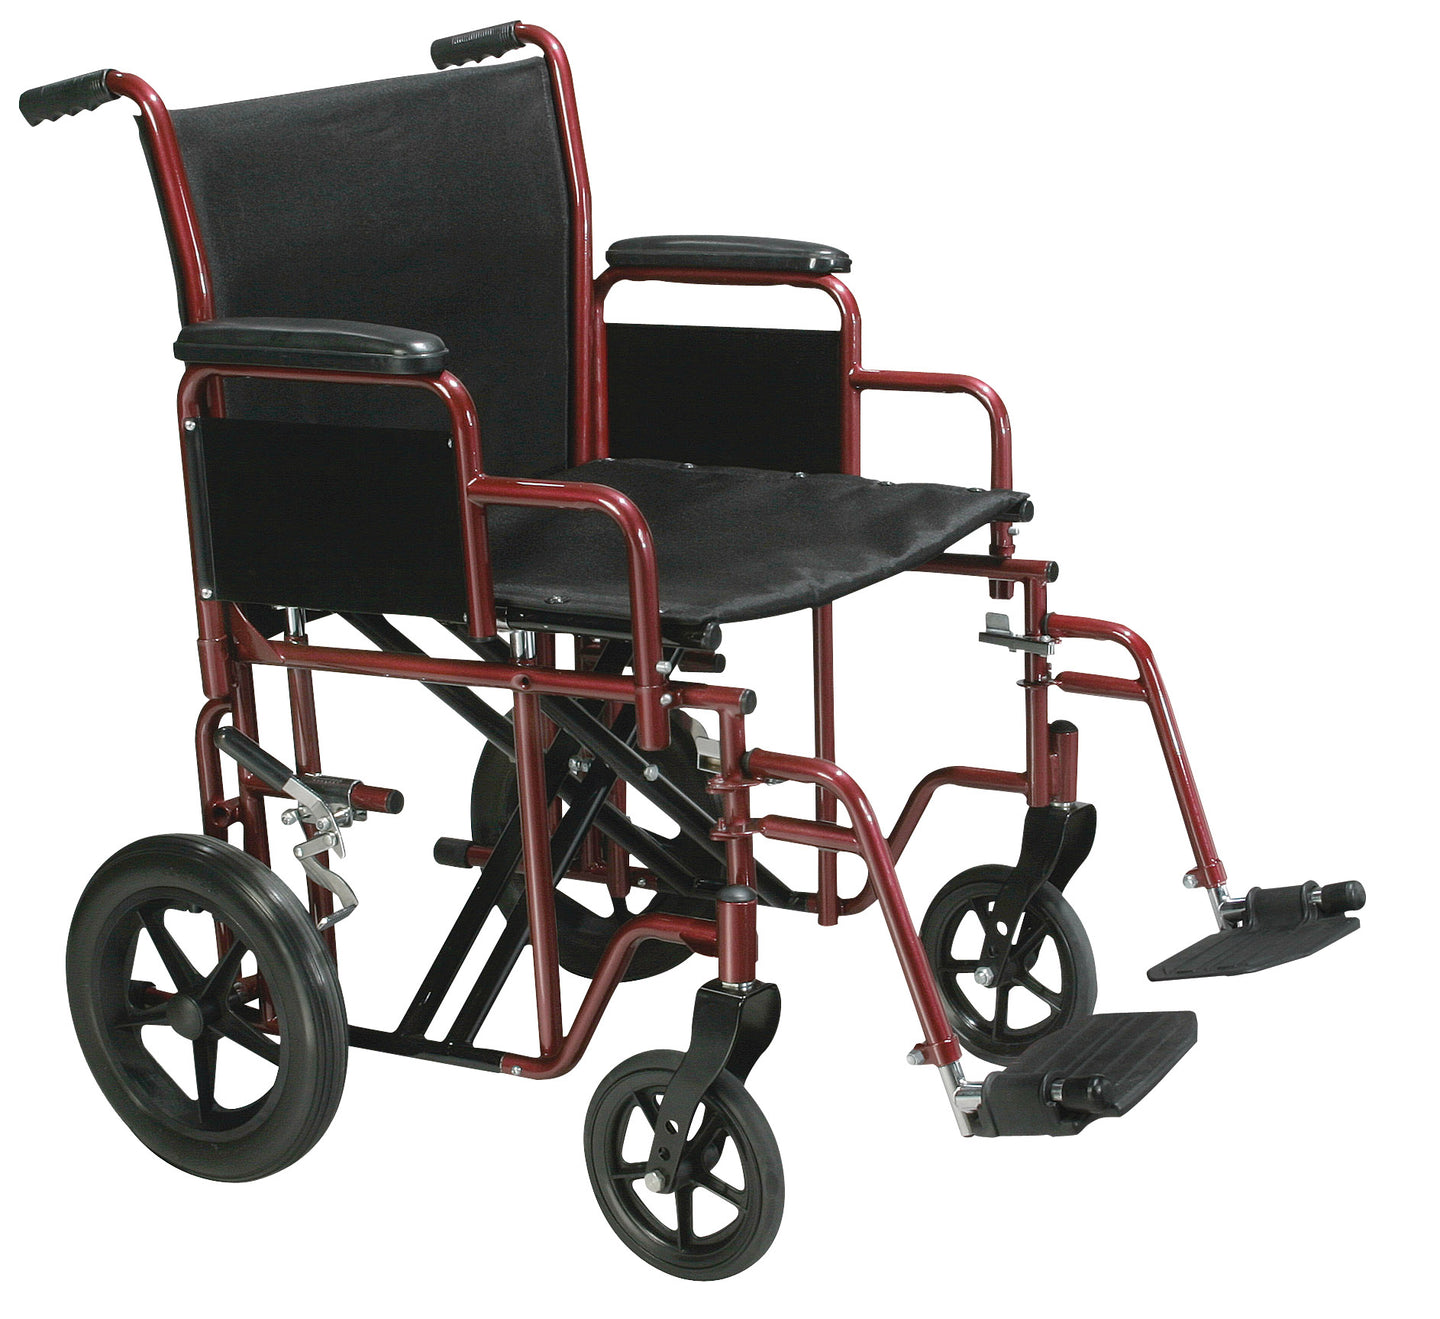 Drive Bariatric Heavy Duty Transport Wheelchair with Swing Away Footrest- 20